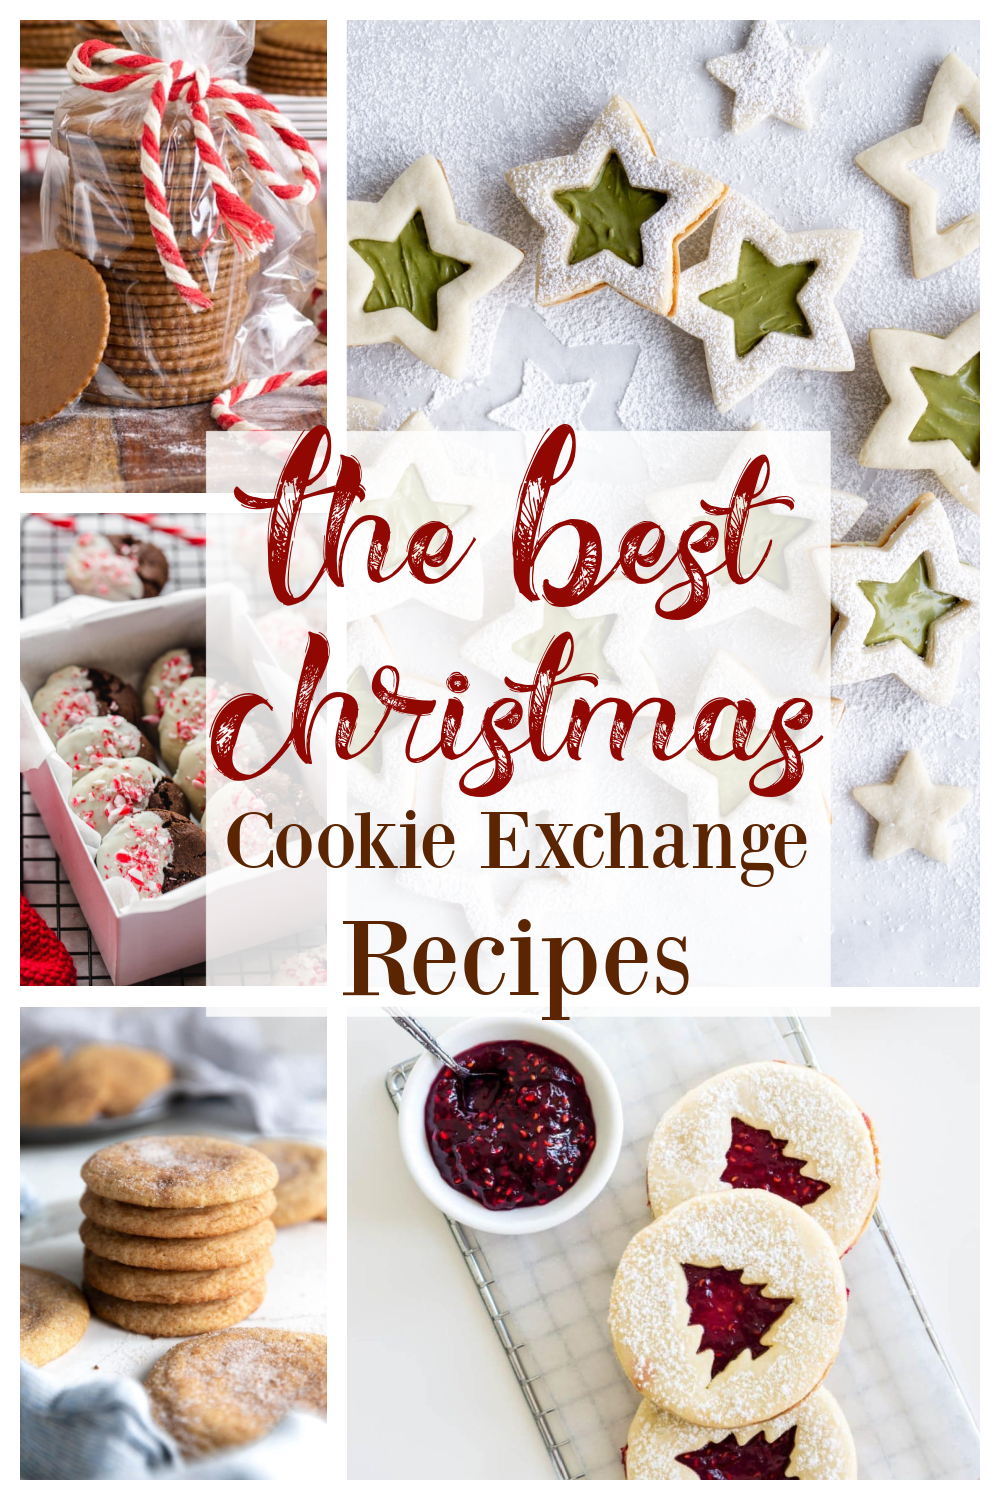 If you're looking for holiday baking inspiration, I've got you covered with this mouthwatering round-up of the best Christmas cookie exchange recipes and tasty ideas for throwing an epic holiday party! via @Ameessavorydish